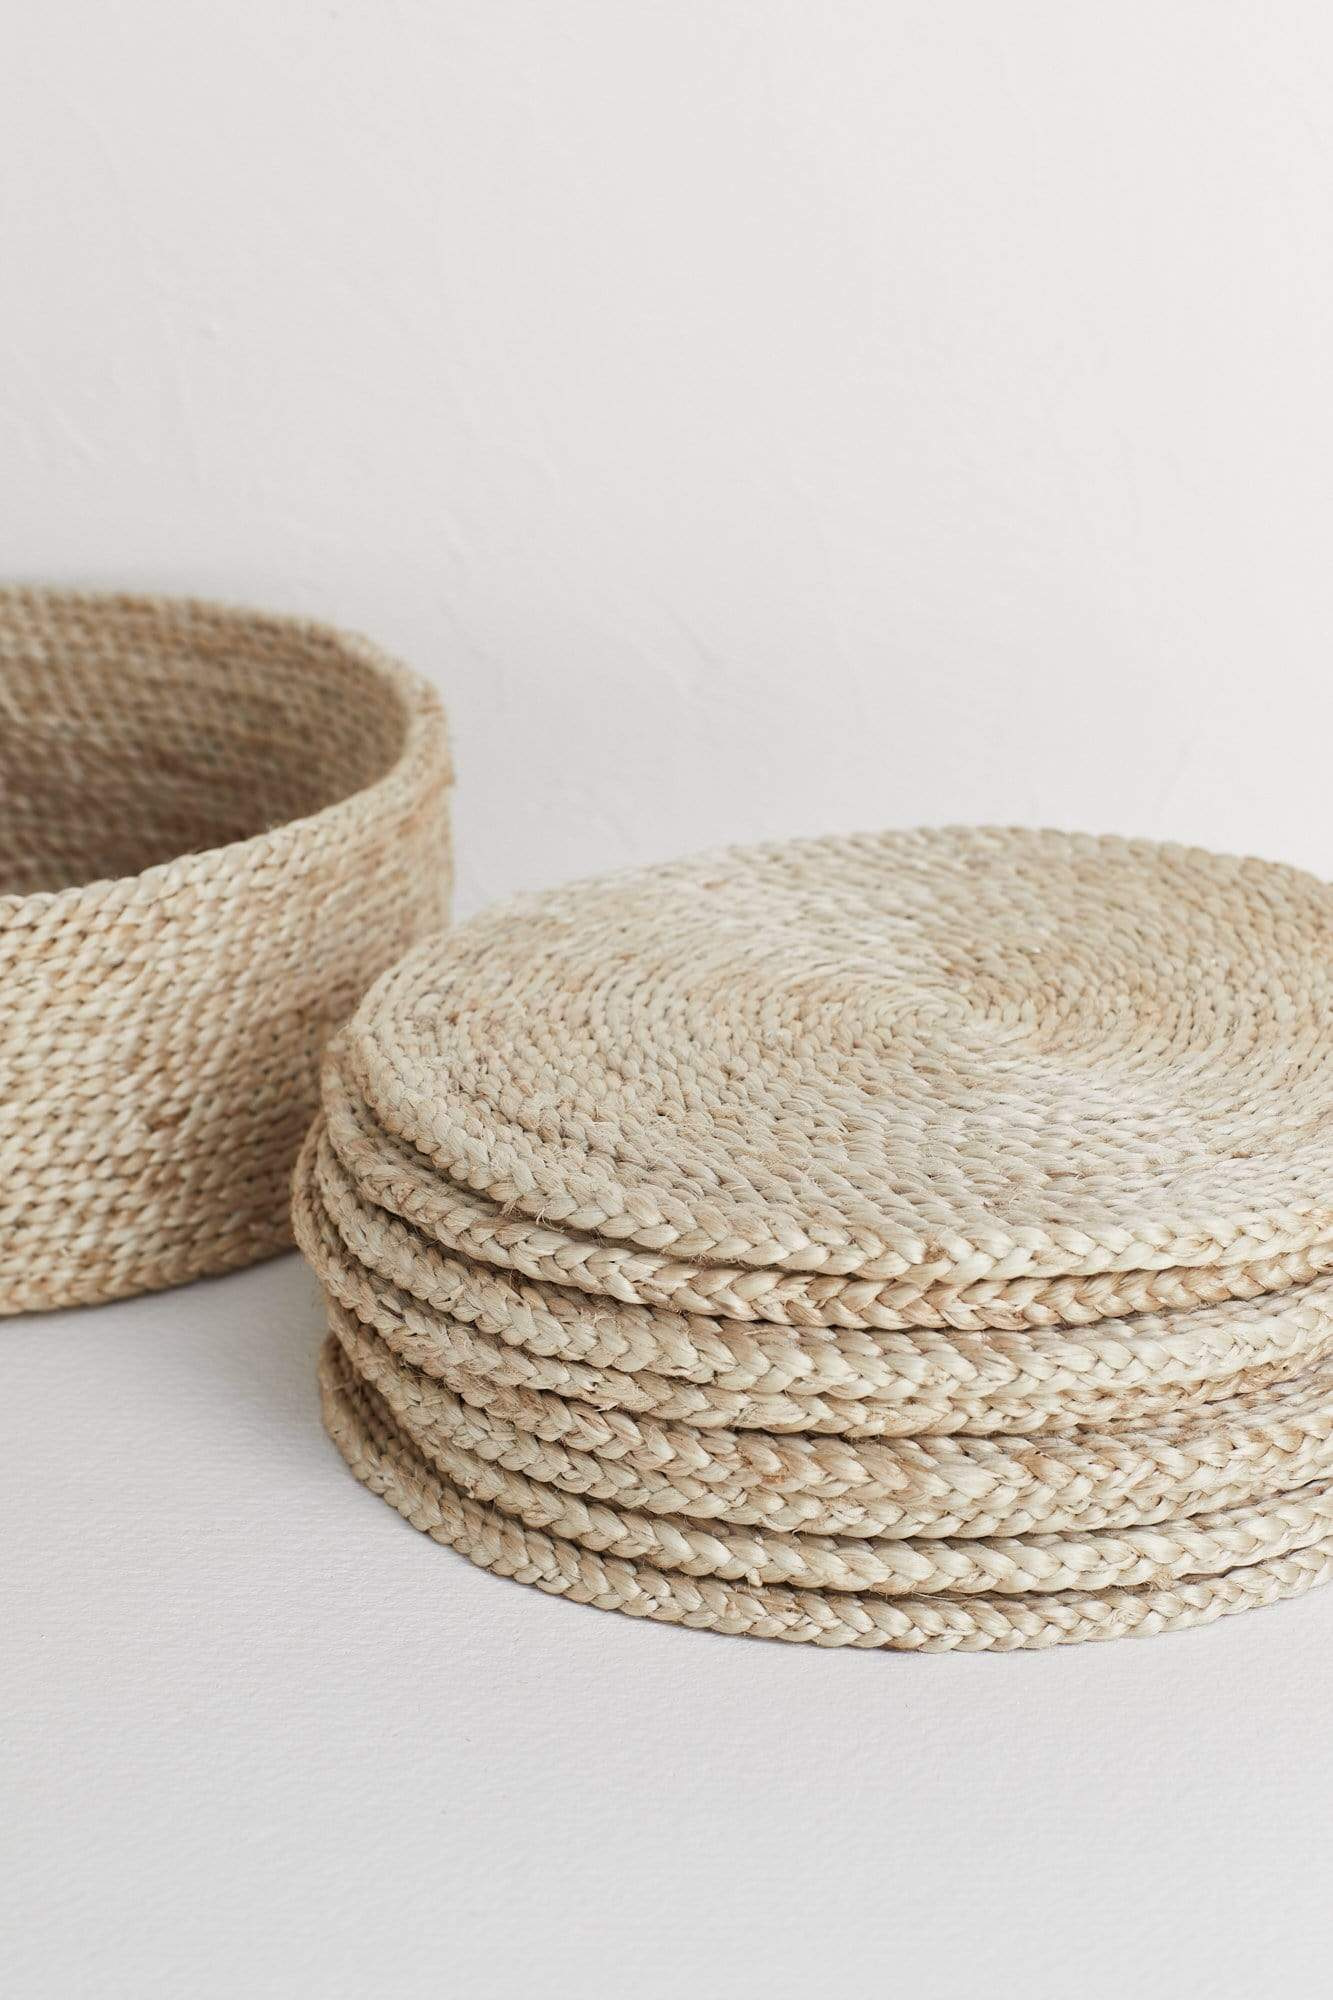 The Dharma Door Home, Table and Gifts Round Jute Placemat Set x 8 in basket Round Natural Jute Placemats x 8 in basket